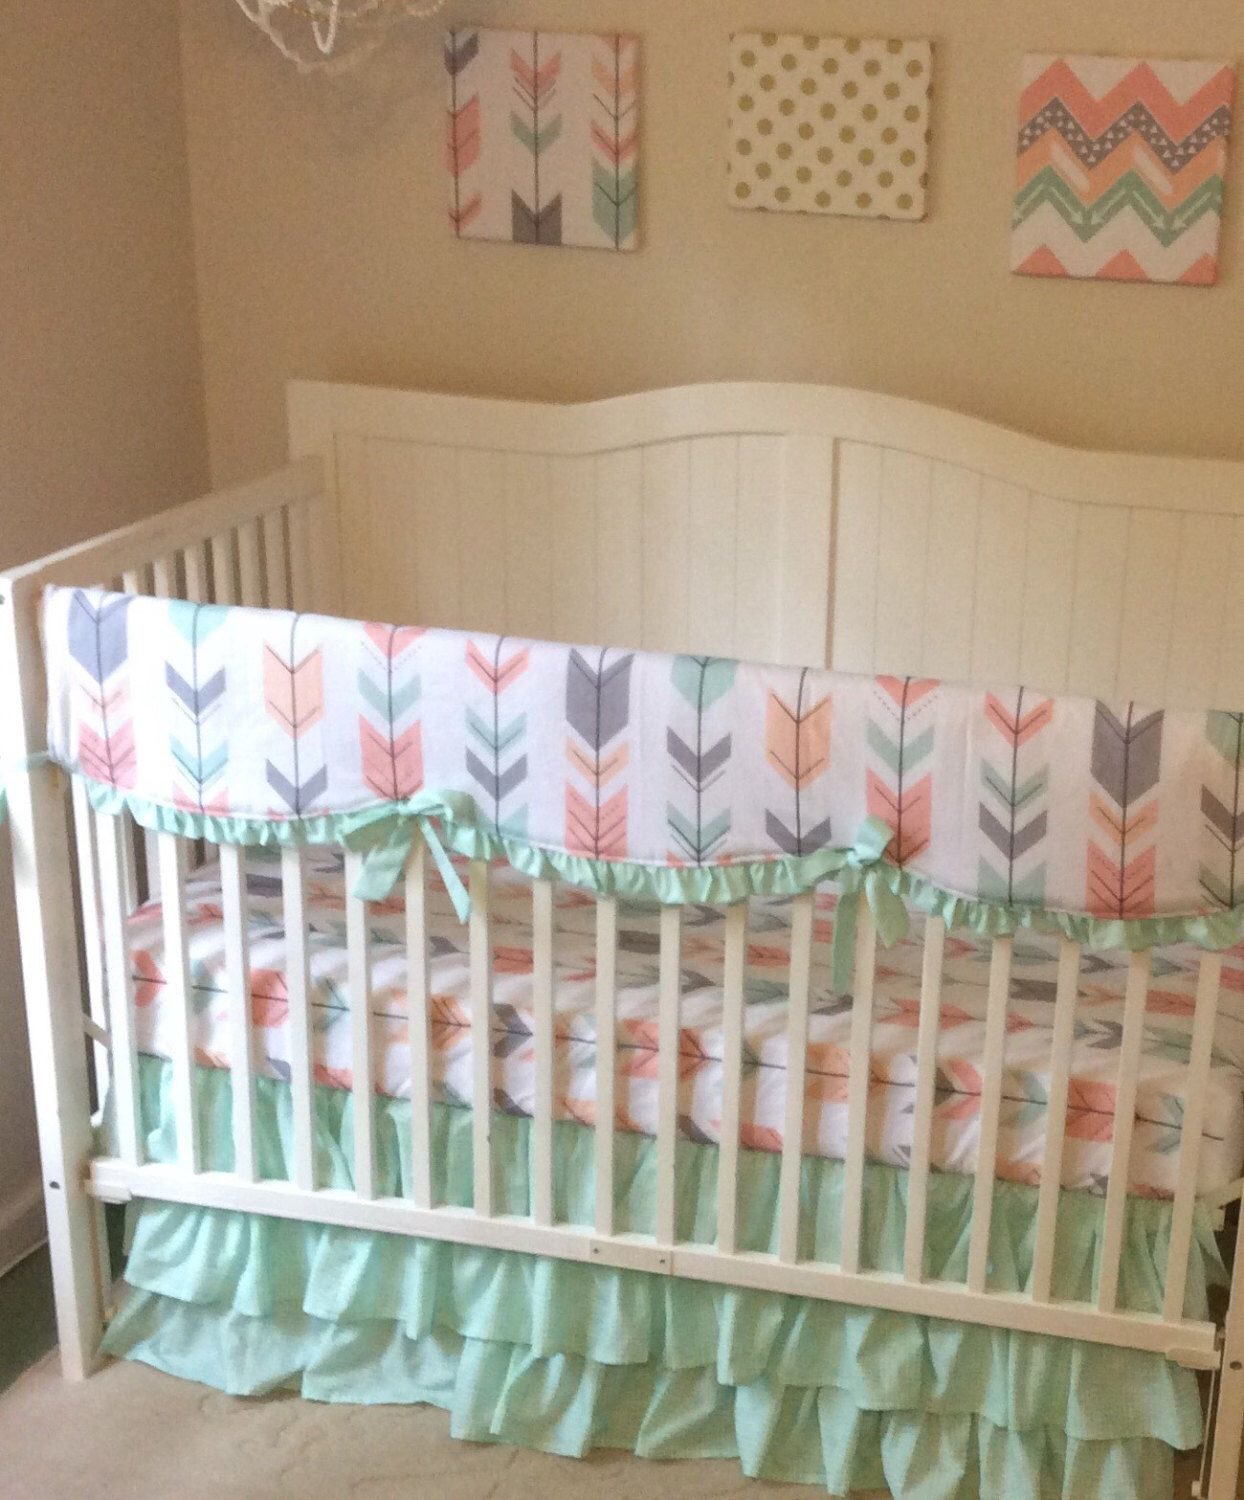 Crib bedding set gray white navy blue with by butterbeansboutique - Mint Peach Coral And Gray Arrows Ruffled Crib Bedding Set